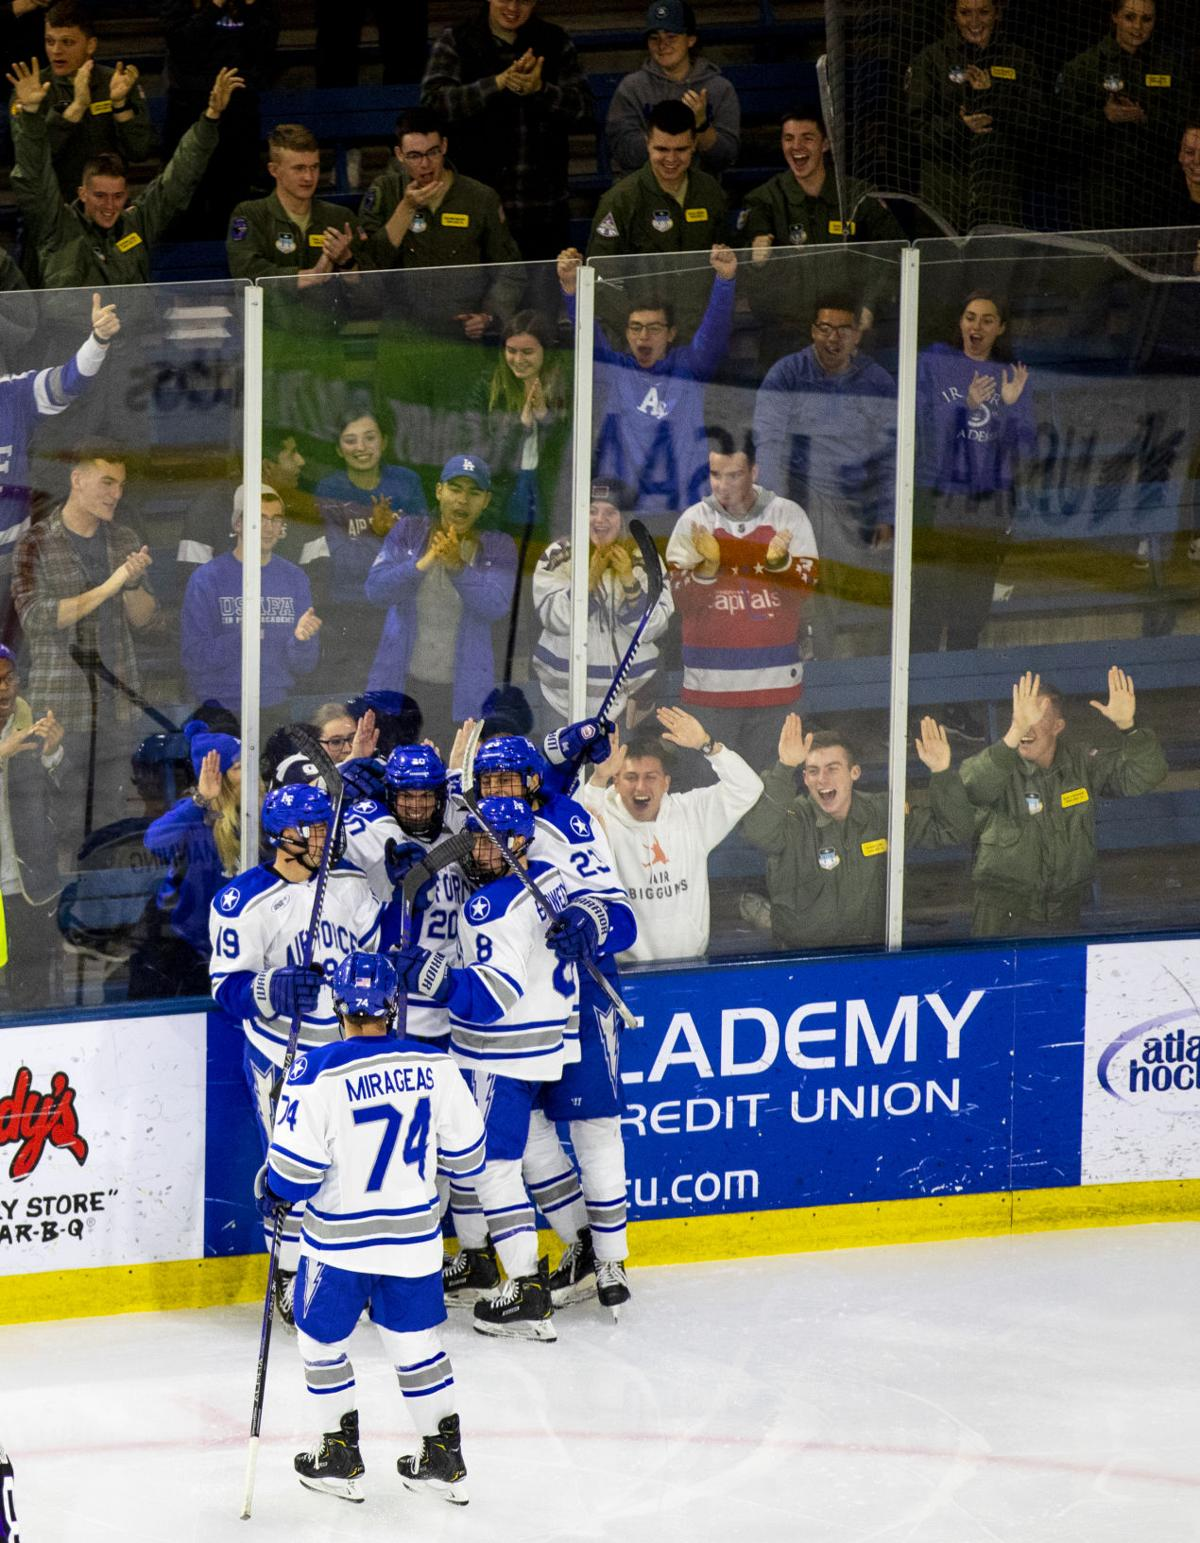 Air Force nabs win, tie in two-game series against Holy Cross Crusaders